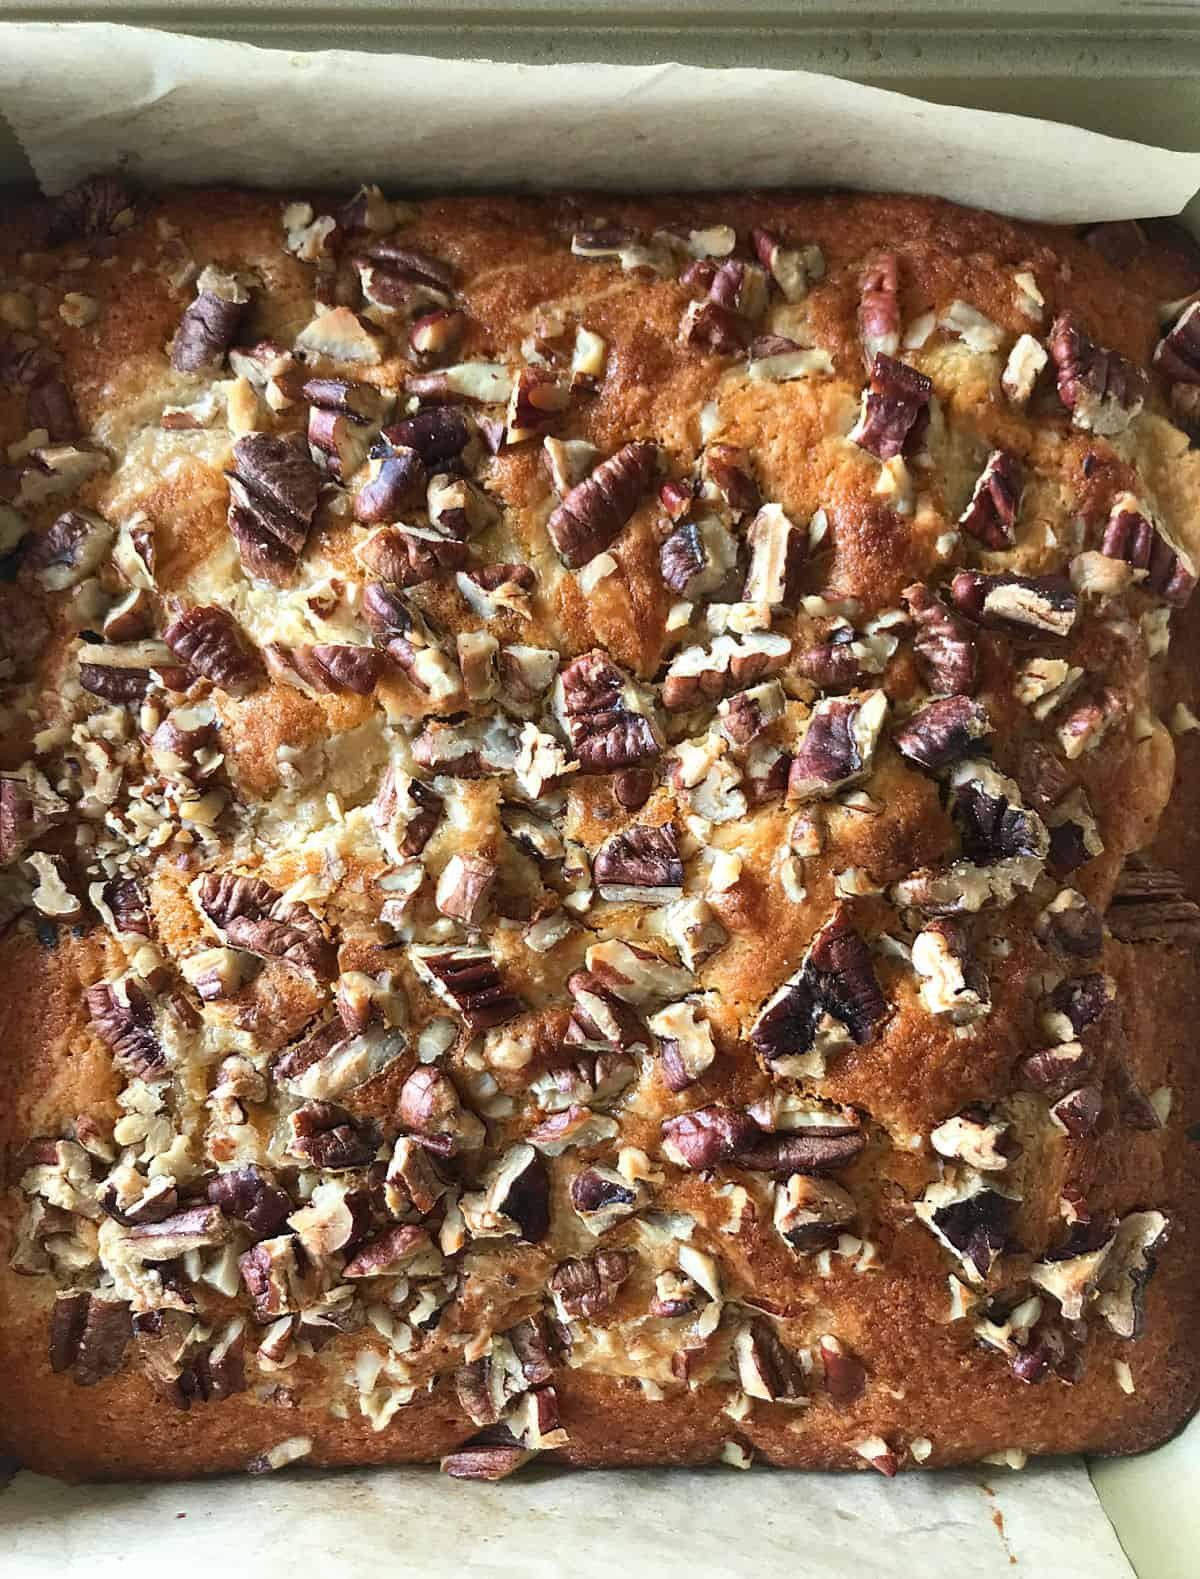 Baked cake with pecan on top, parchment paper